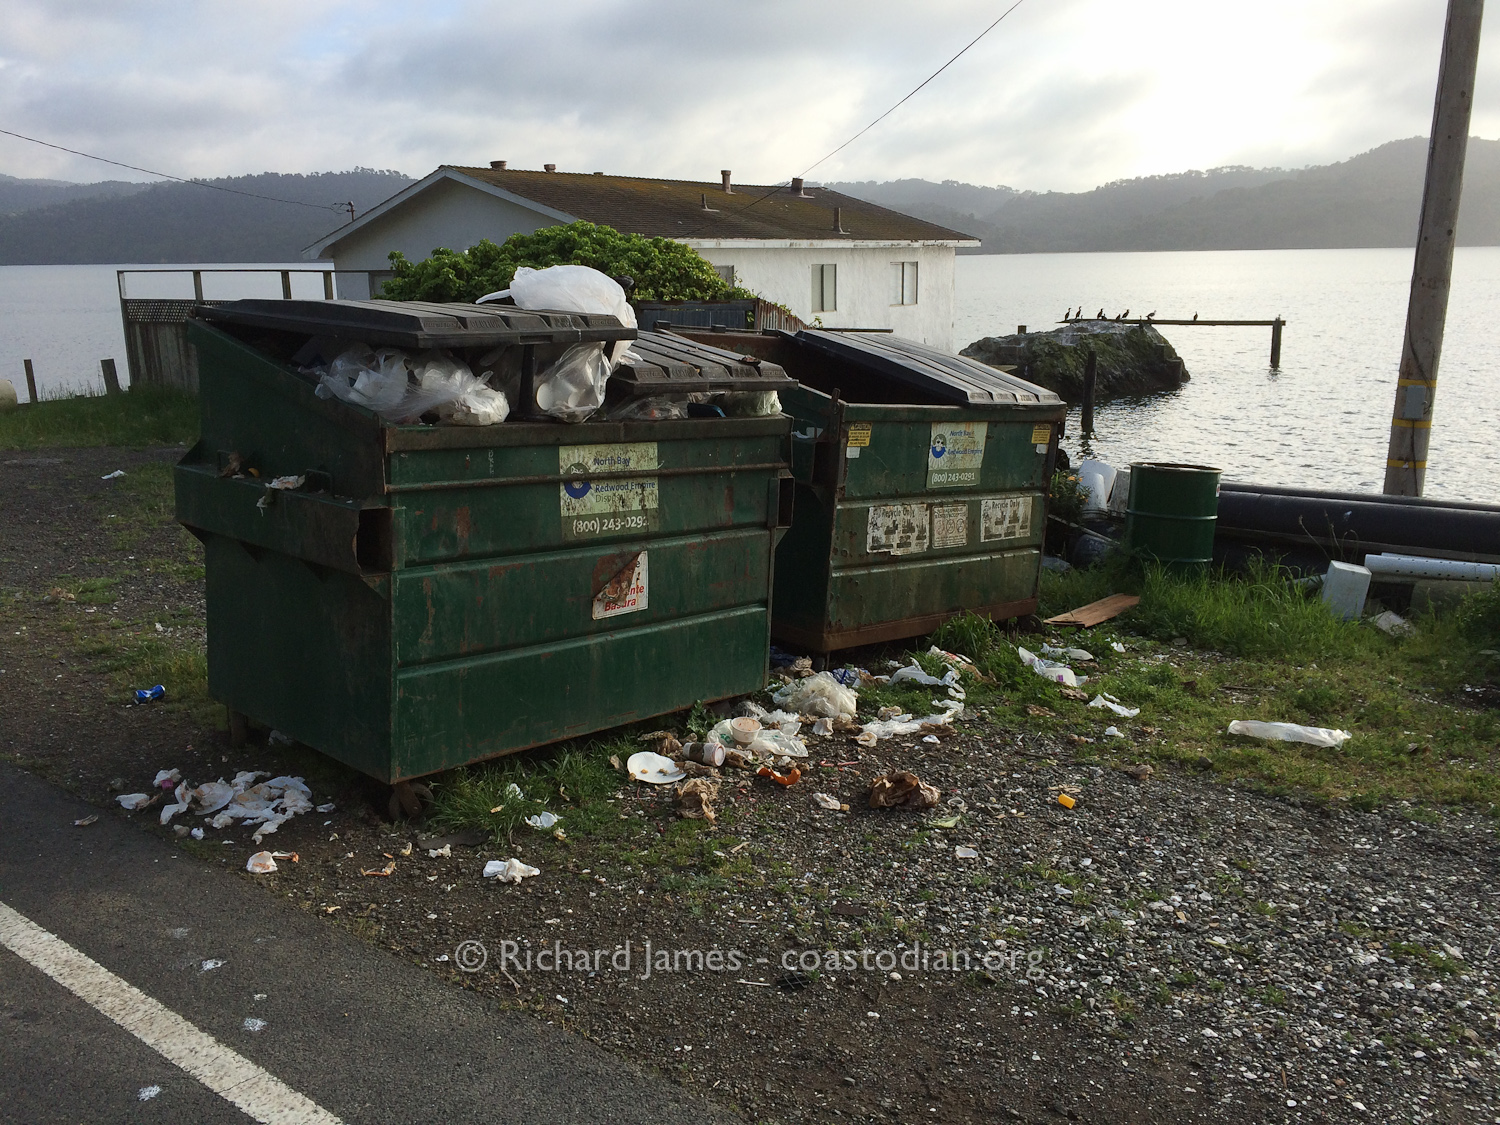 11 April, 2016 Tony's Seafood Garbage bins ©Richard James - coastodian.org